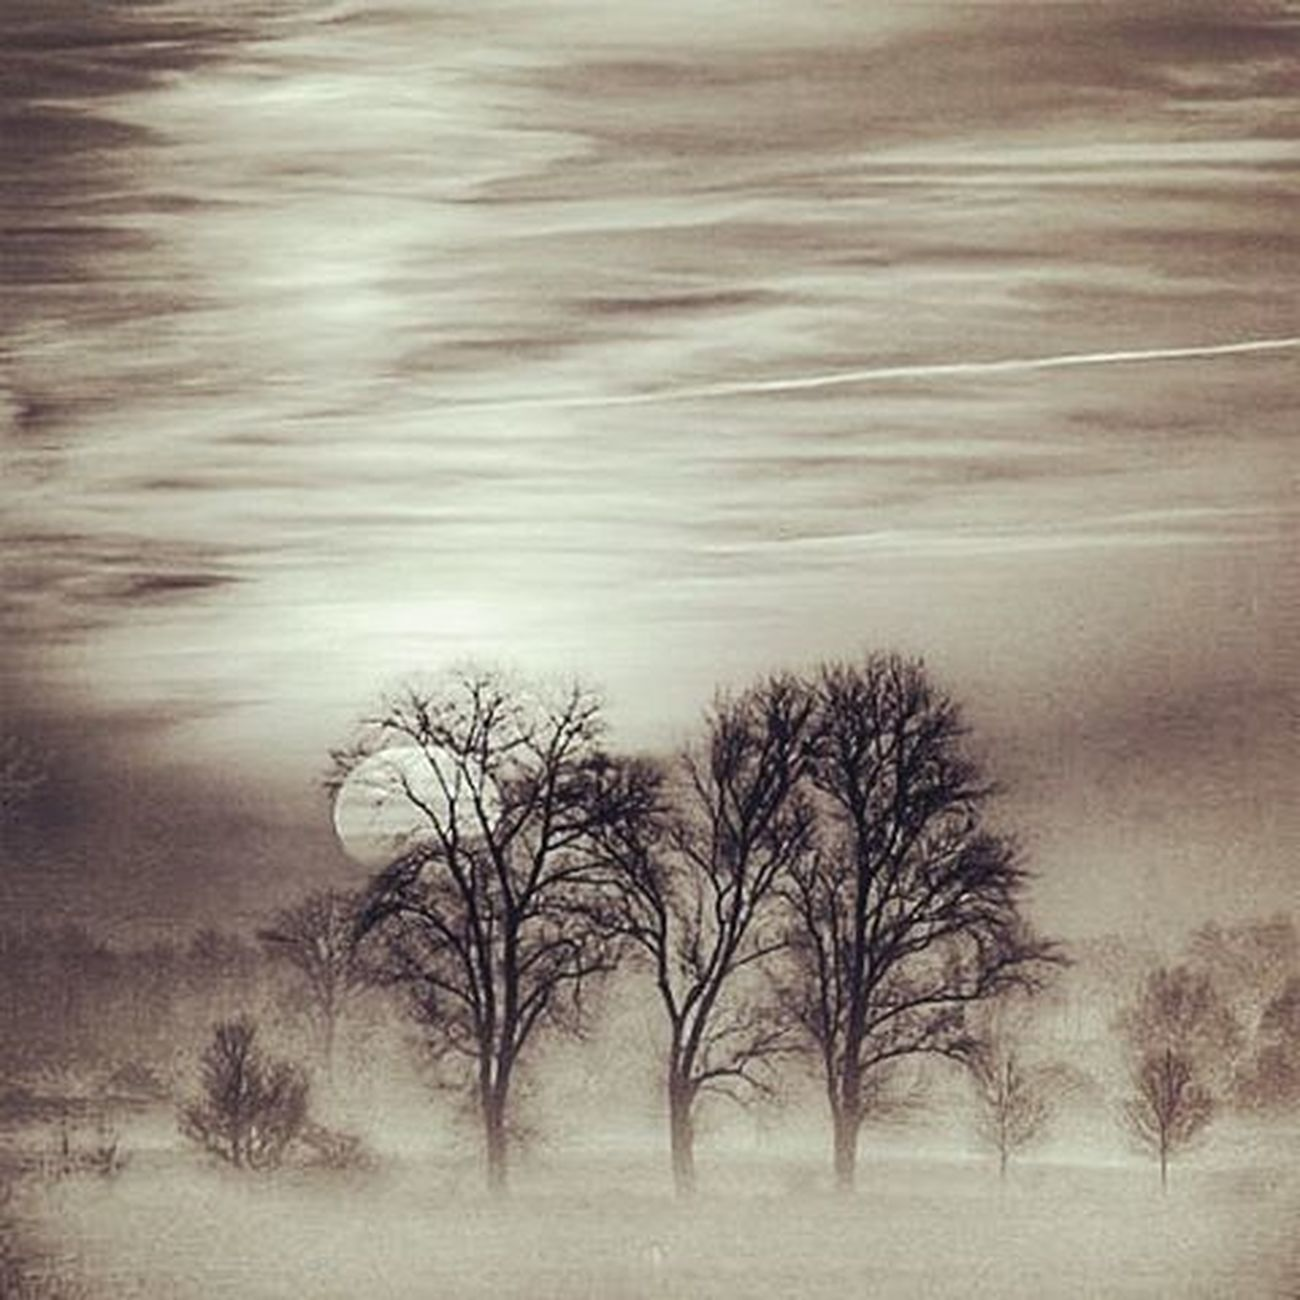 Match_bw Bw_lover Dark_nature Best_bnw_archive Bnw_captures Nature Naturelovers Insta_bw Pocket_bnw Srs_bnw Rsa_bnw Like4like Likeforlike Ayad_bnw Moonlight Wood Darkness Darkwood Night Pocket_trees Photoworld_star_bnw Fiftyshades_of_nature